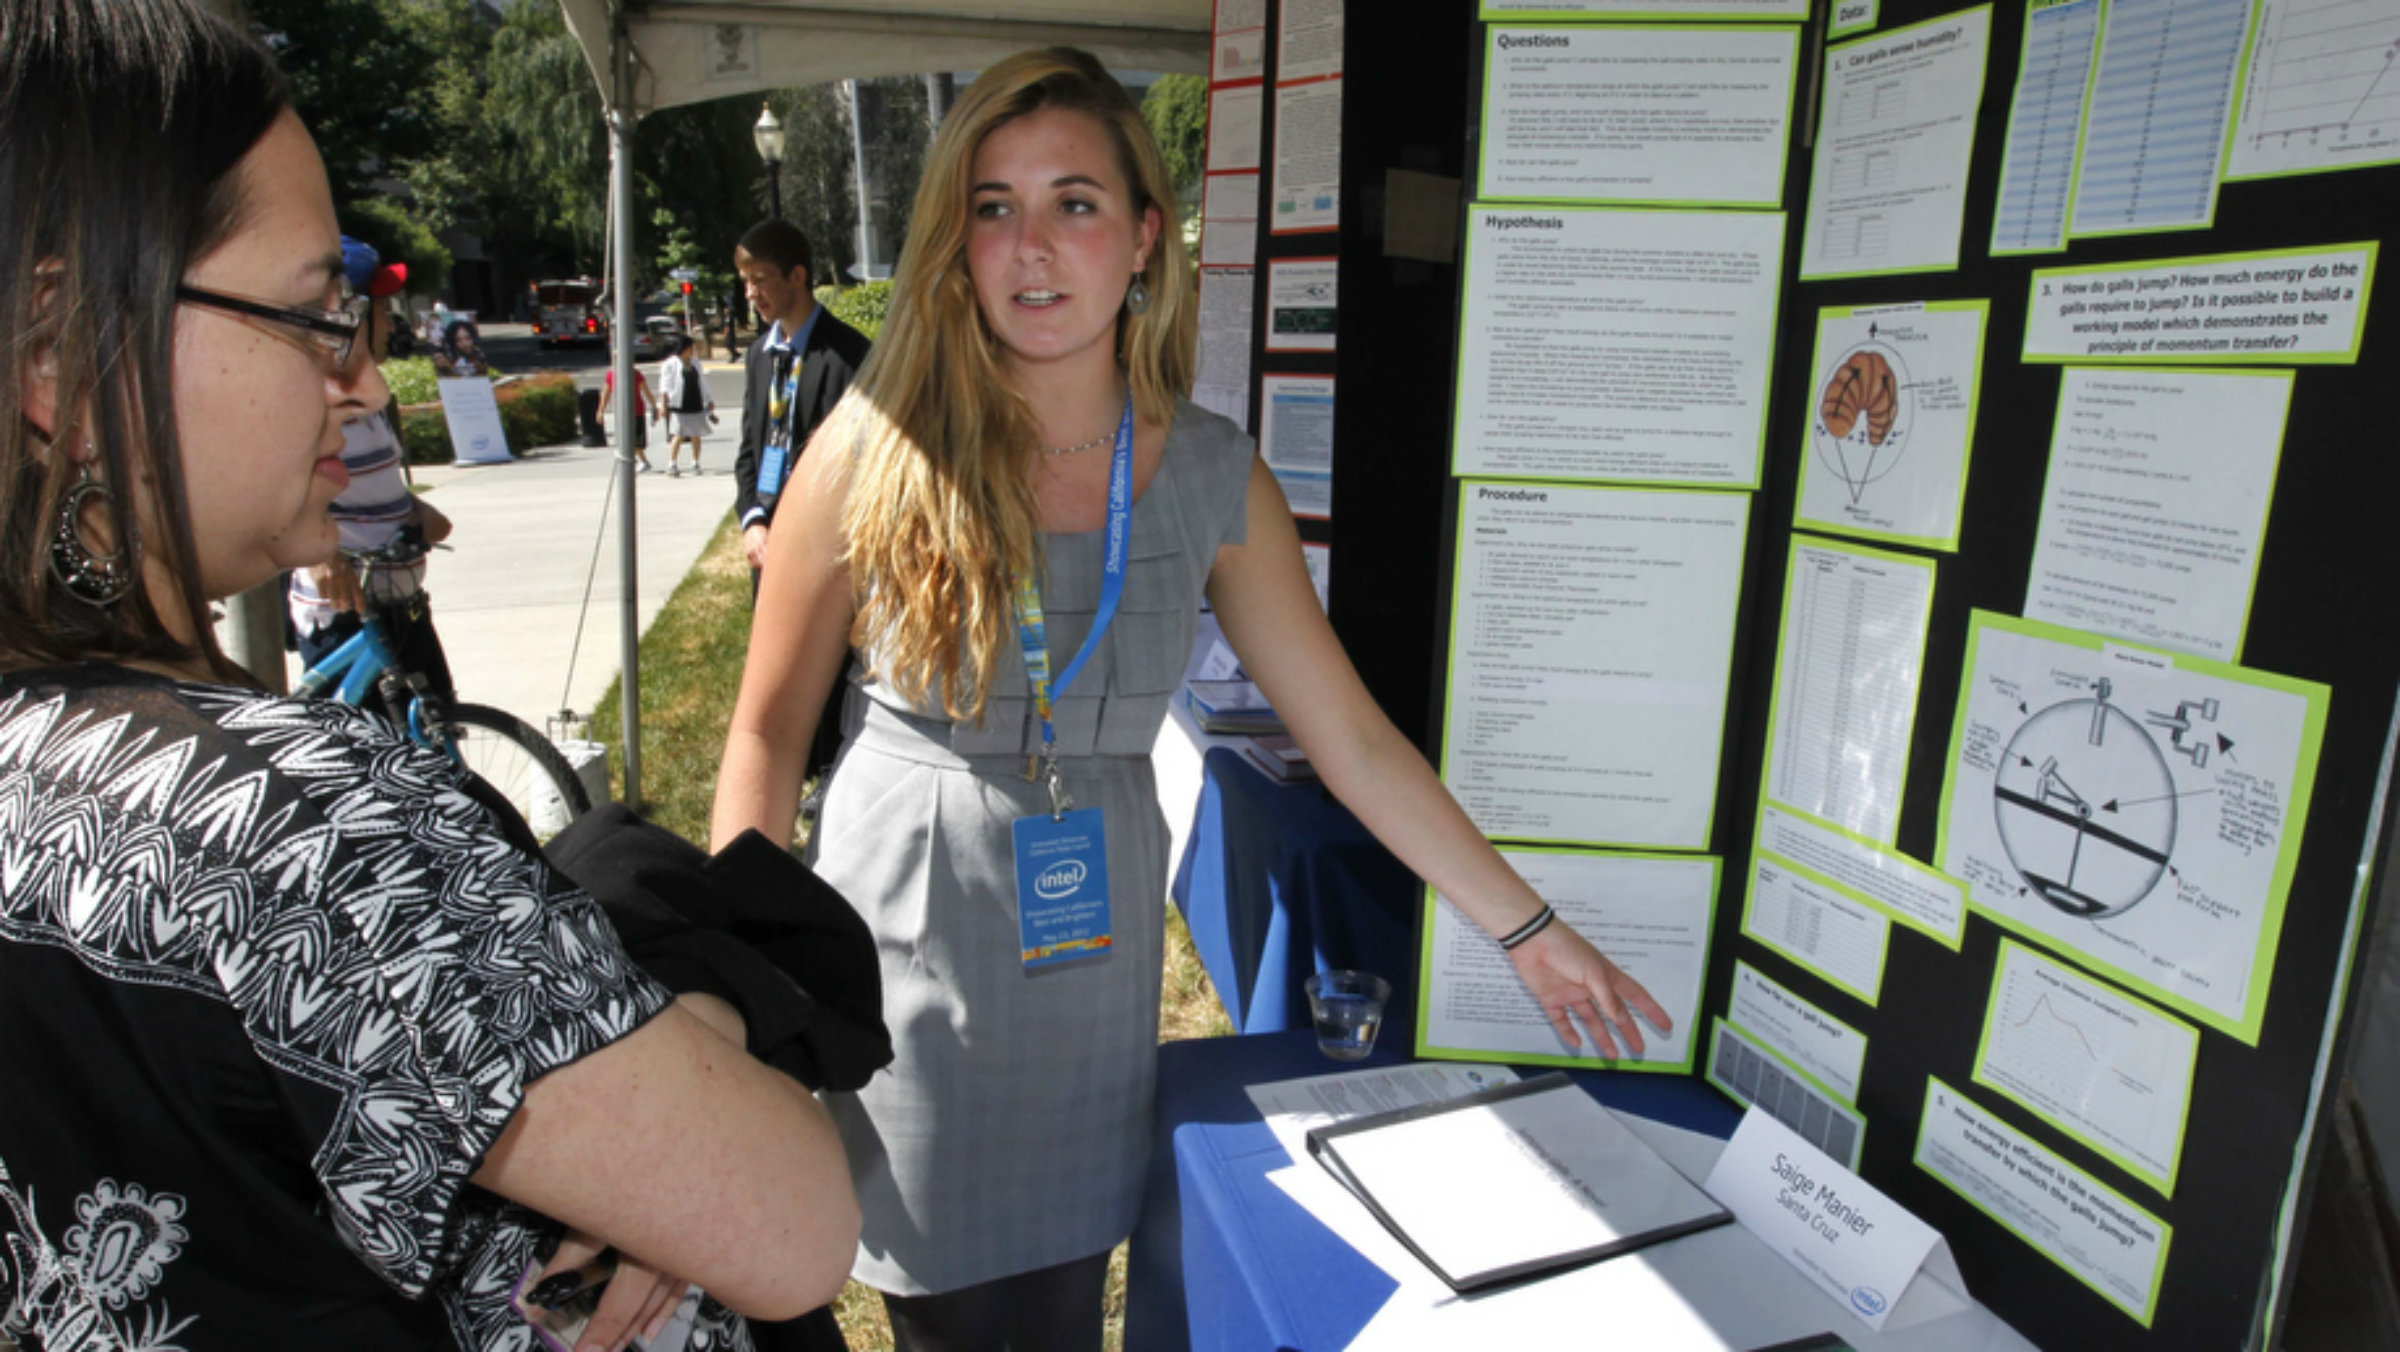 A young scientist explaining a research project.